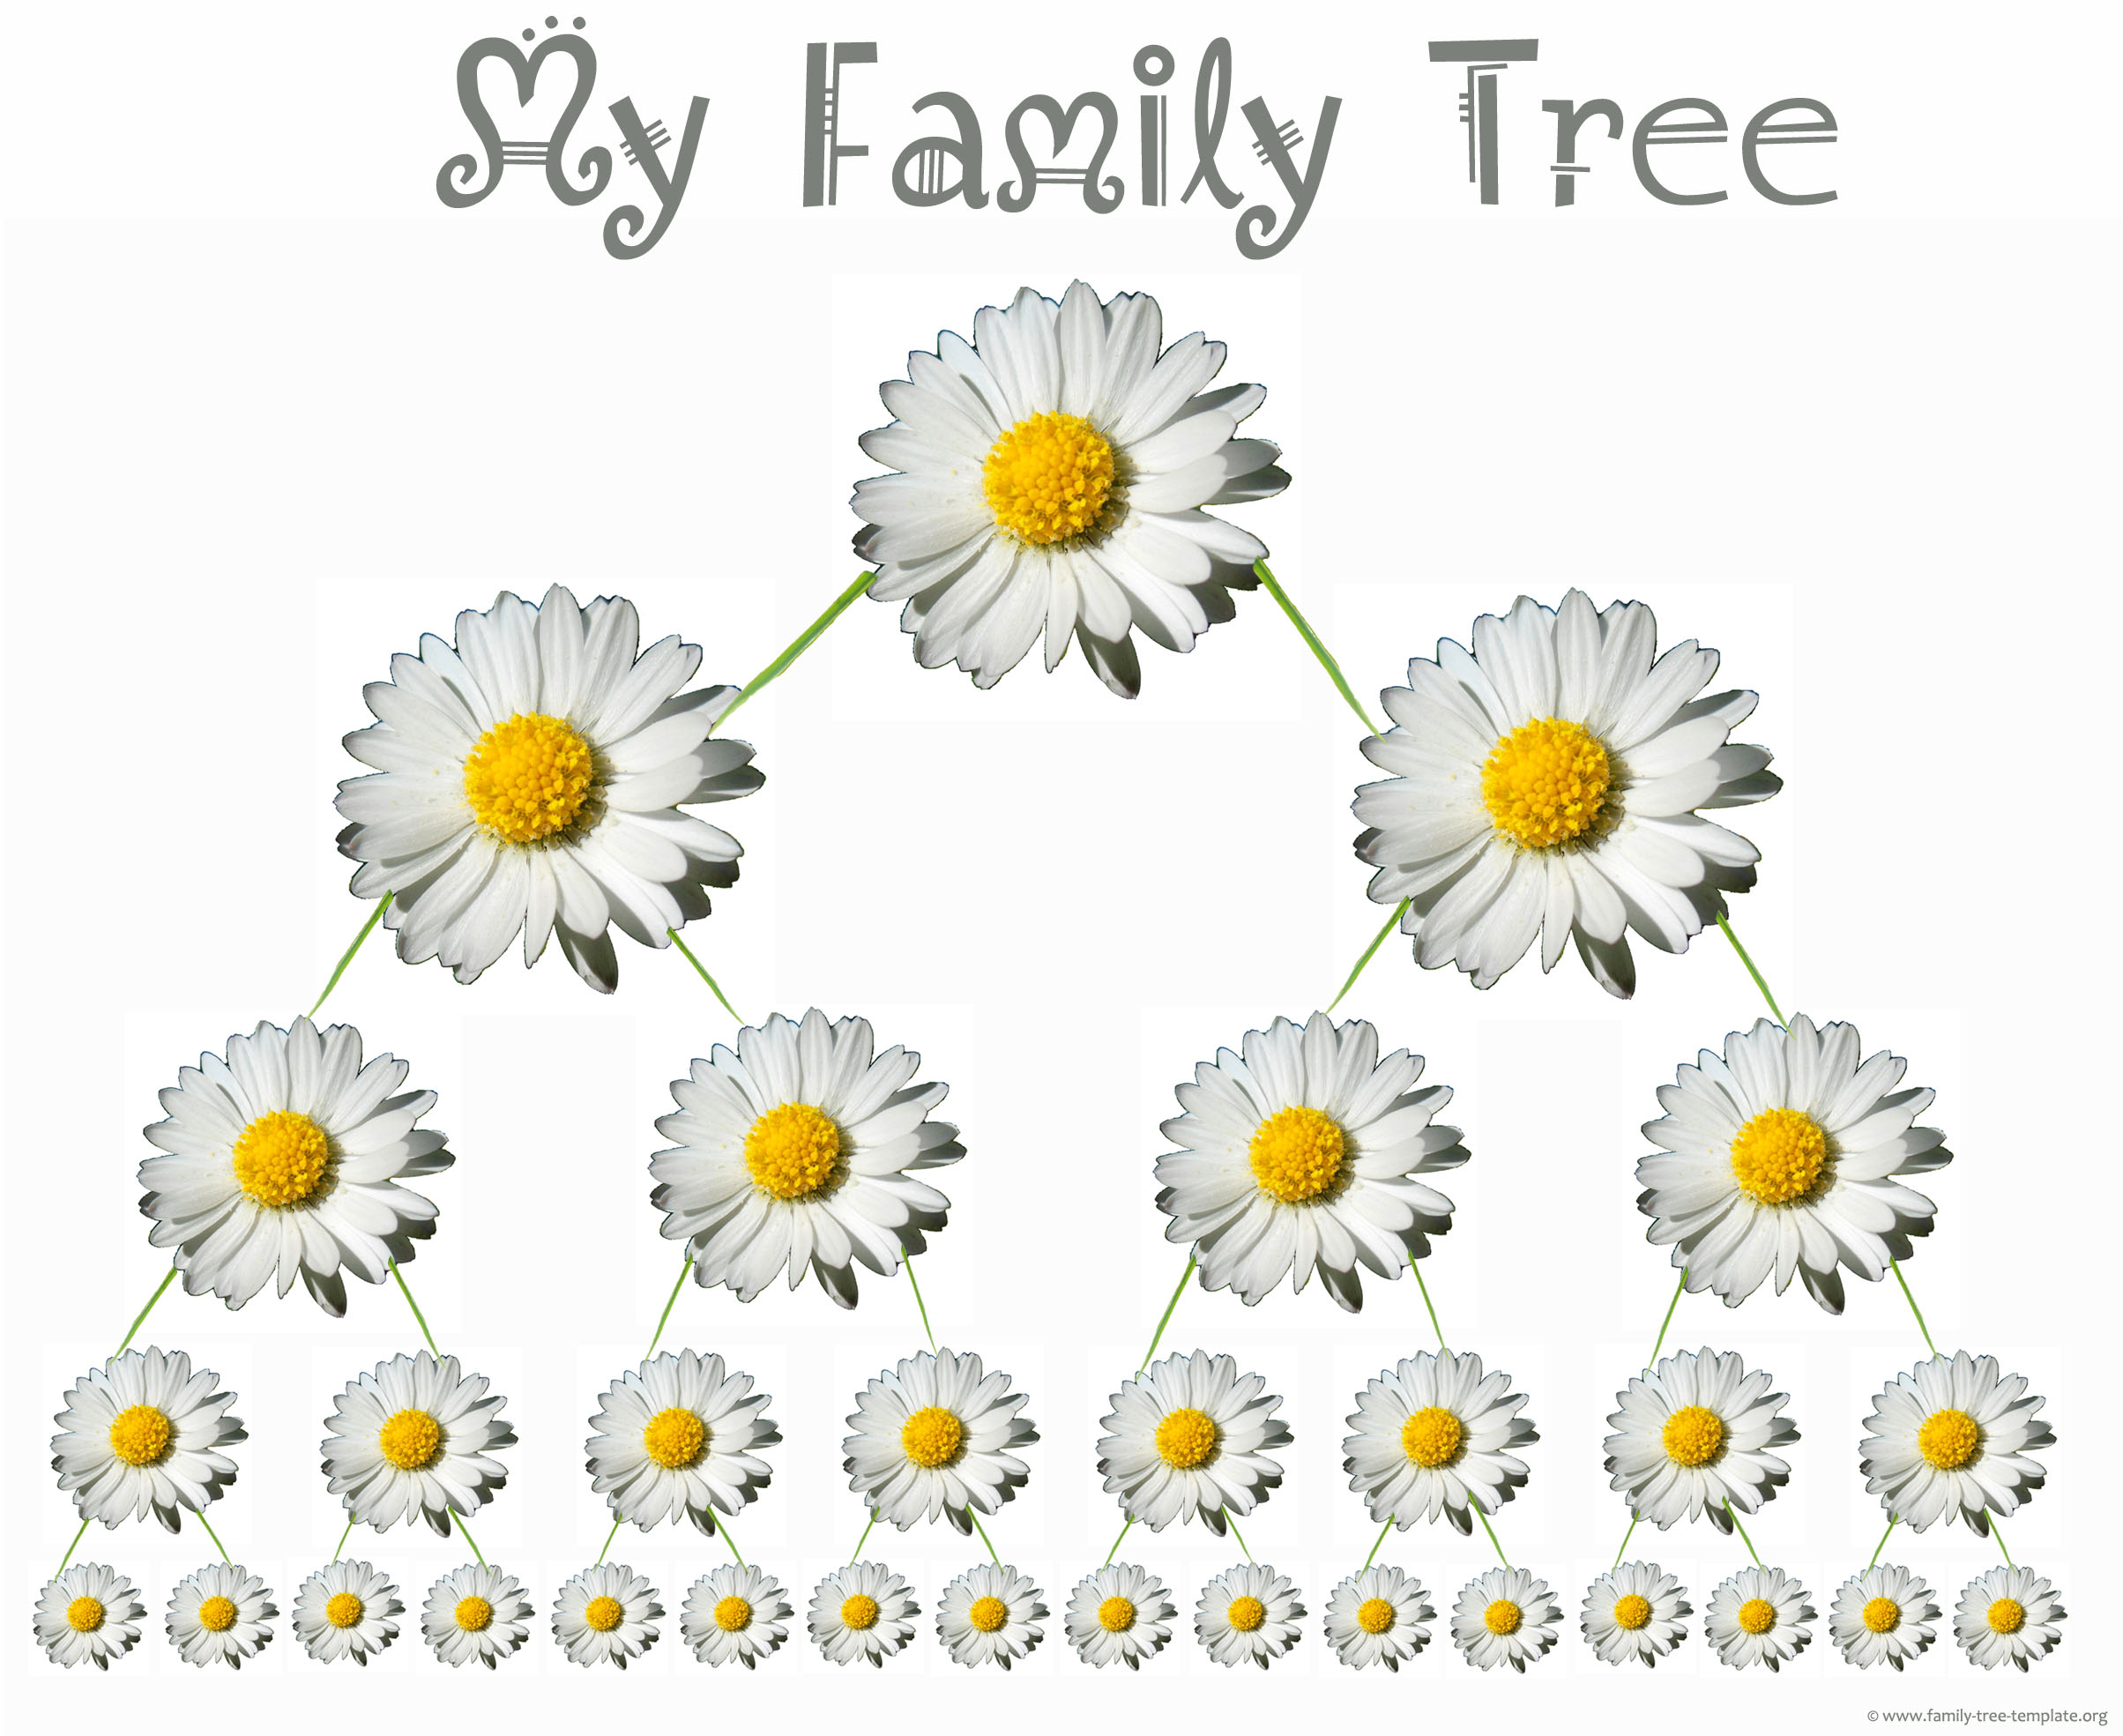 Daisies kids family tree printout with pretty daisies.